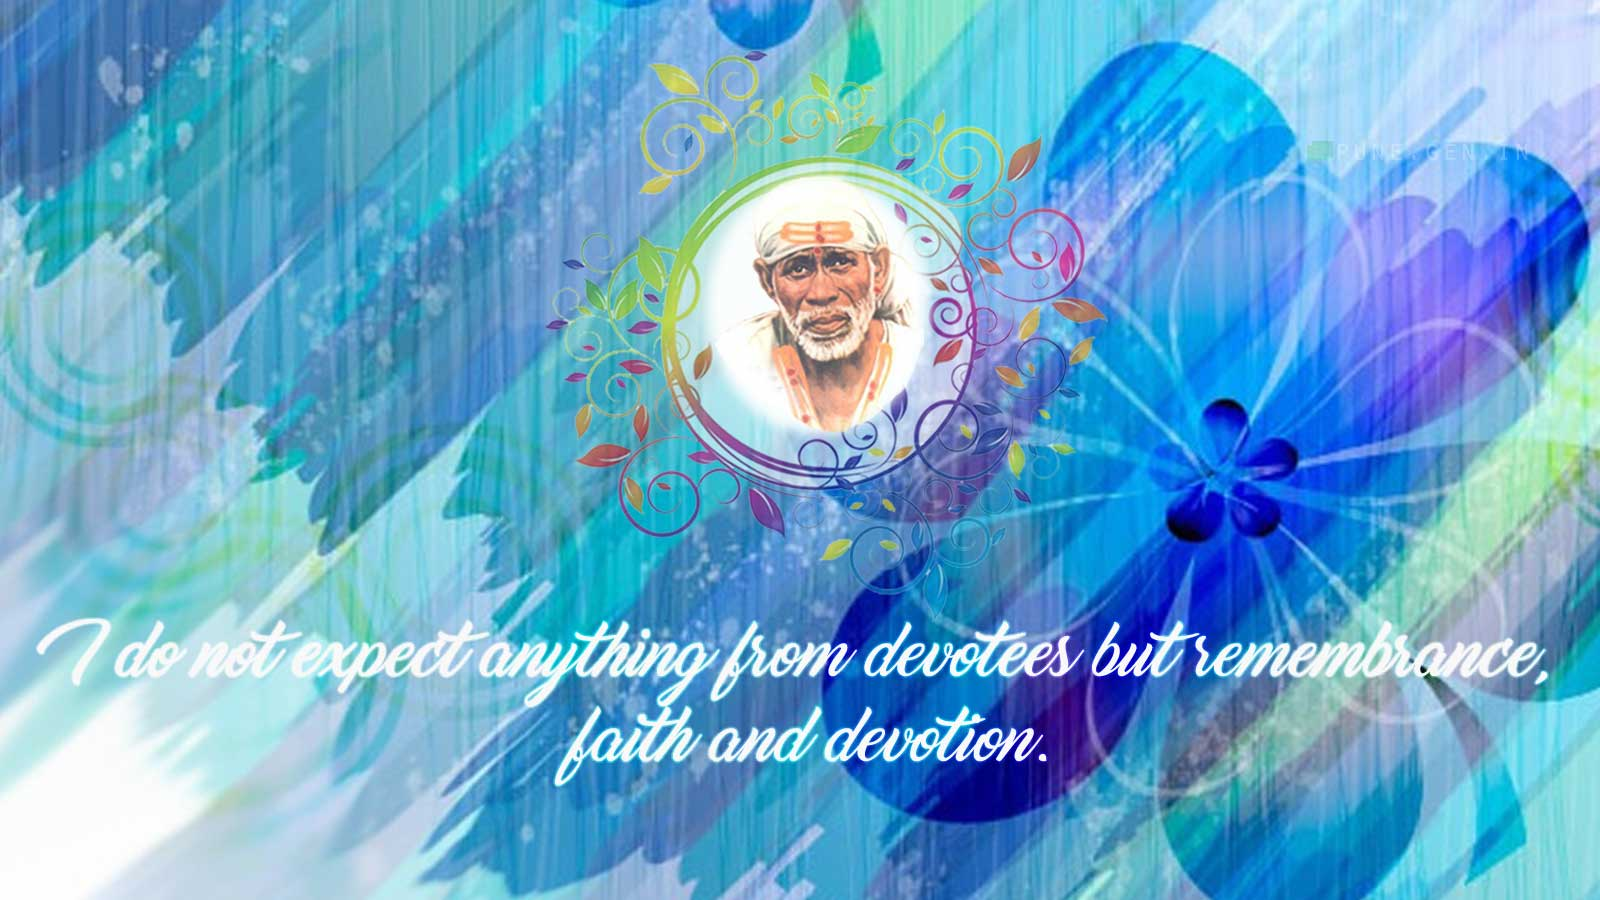 Sai Baba Teaching's : I do not expect anything